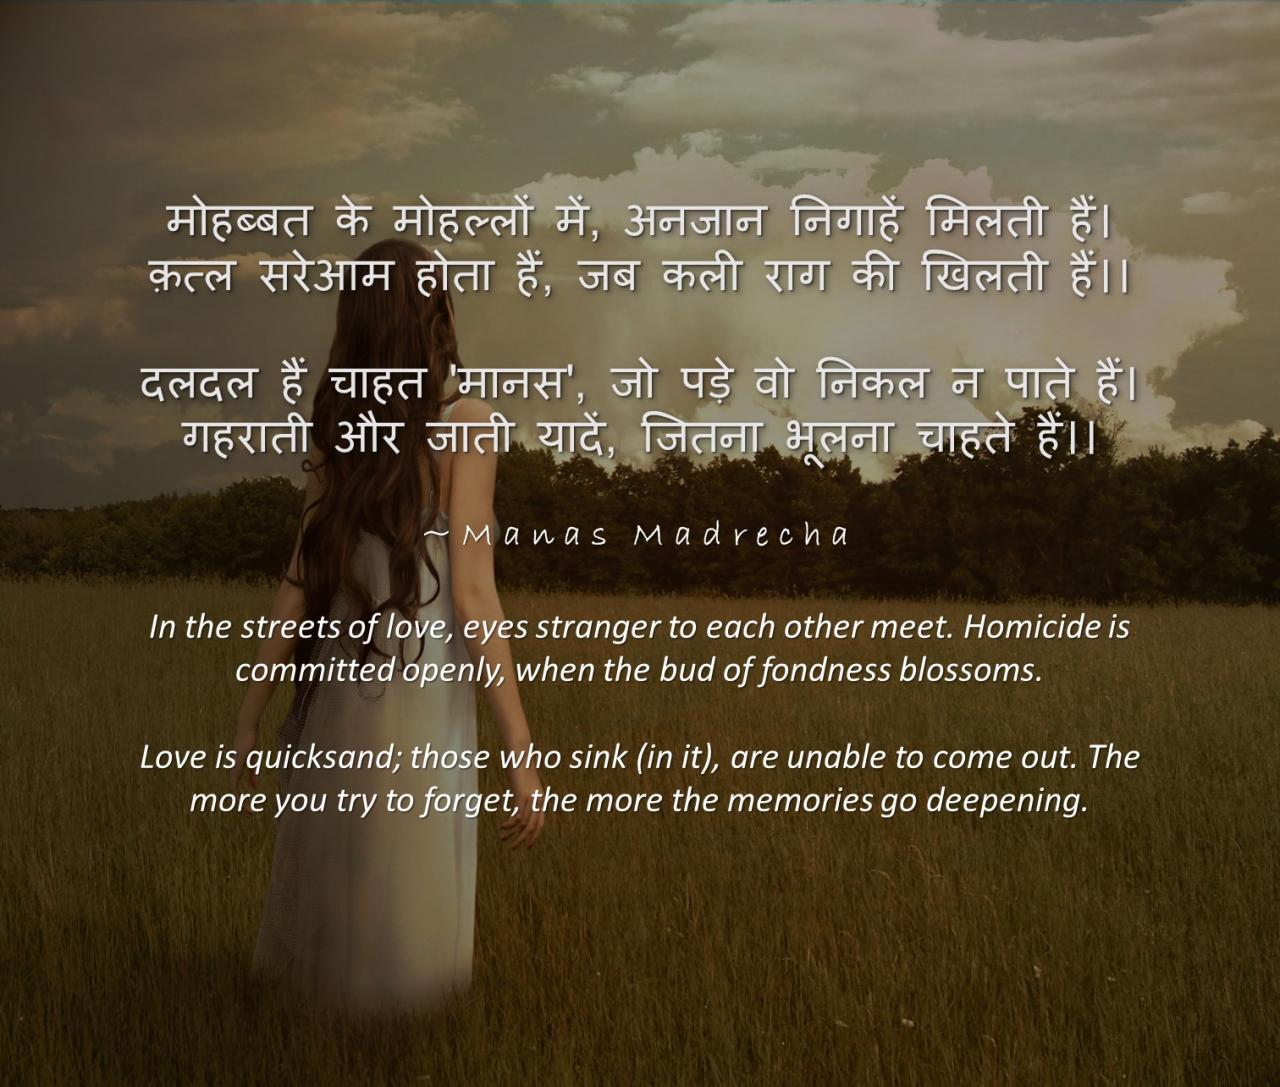 Manas Madrecha Manas Madrecha Blog Manas Madrecha Poem Simplifying Universe Hindi Poem